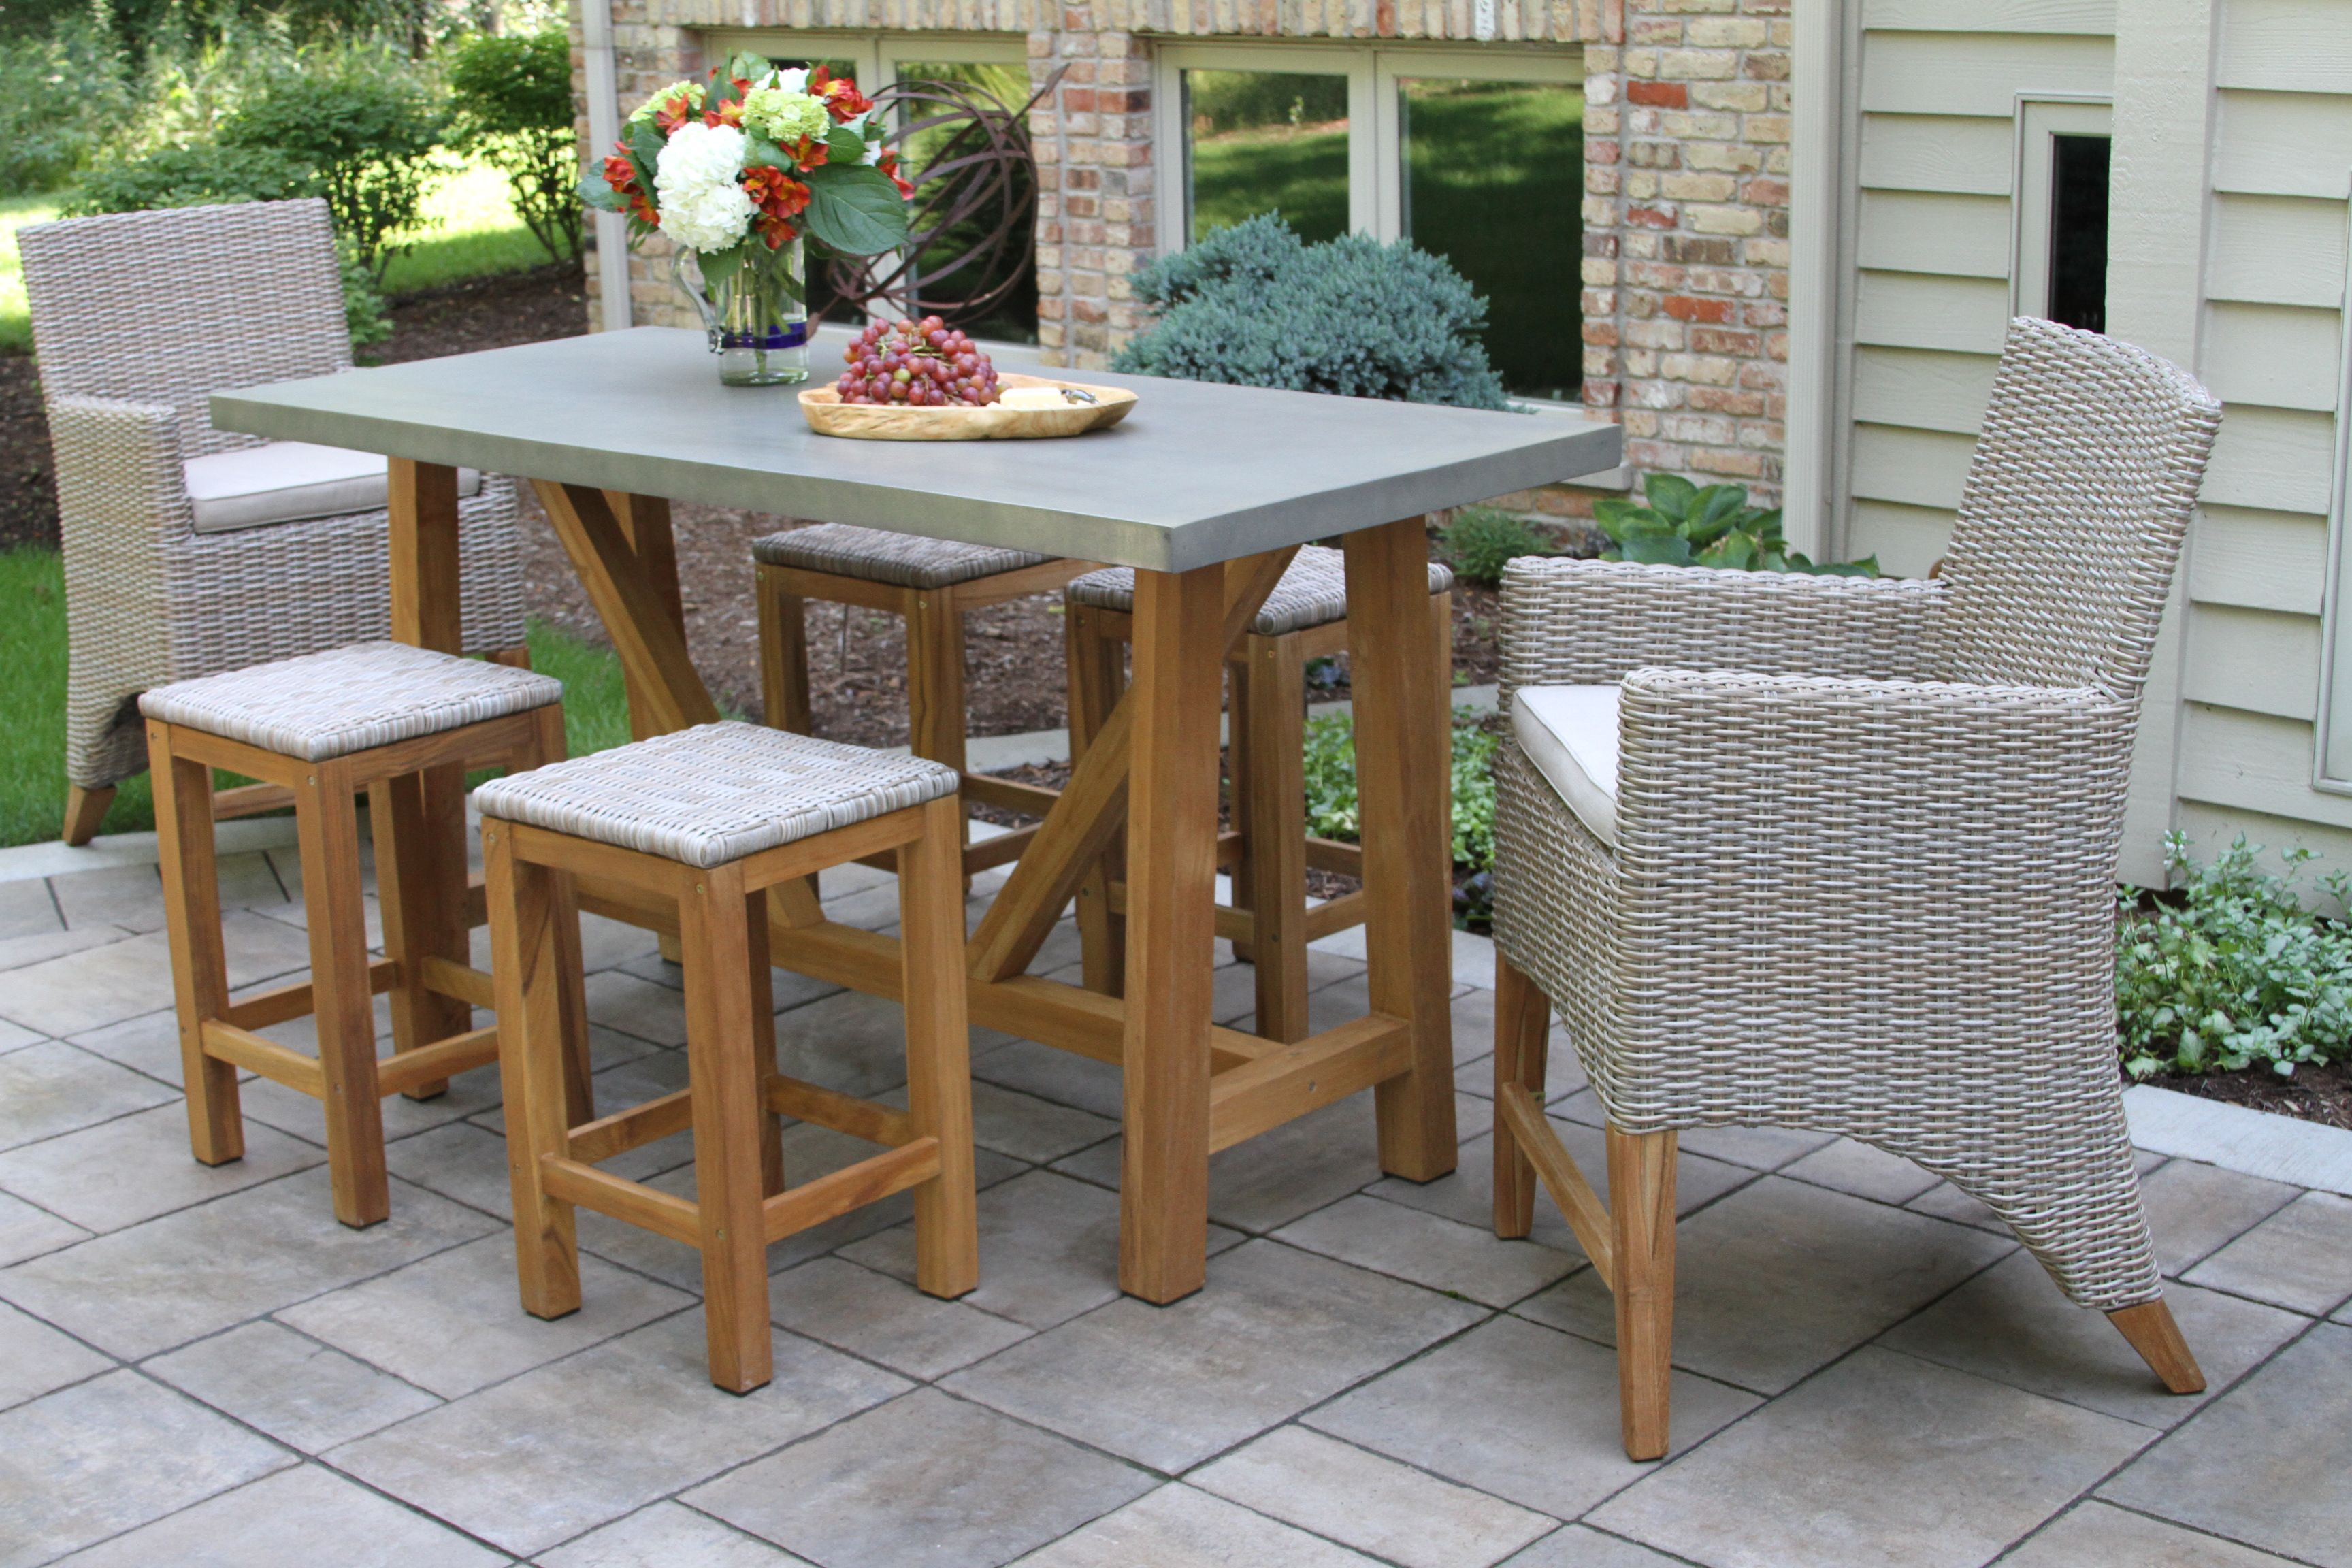 Awesome Vineyard Teak Wicker Counter Height Dining Set Teak Caraccident5 Cool Chair Designs And Ideas Caraccident5Info